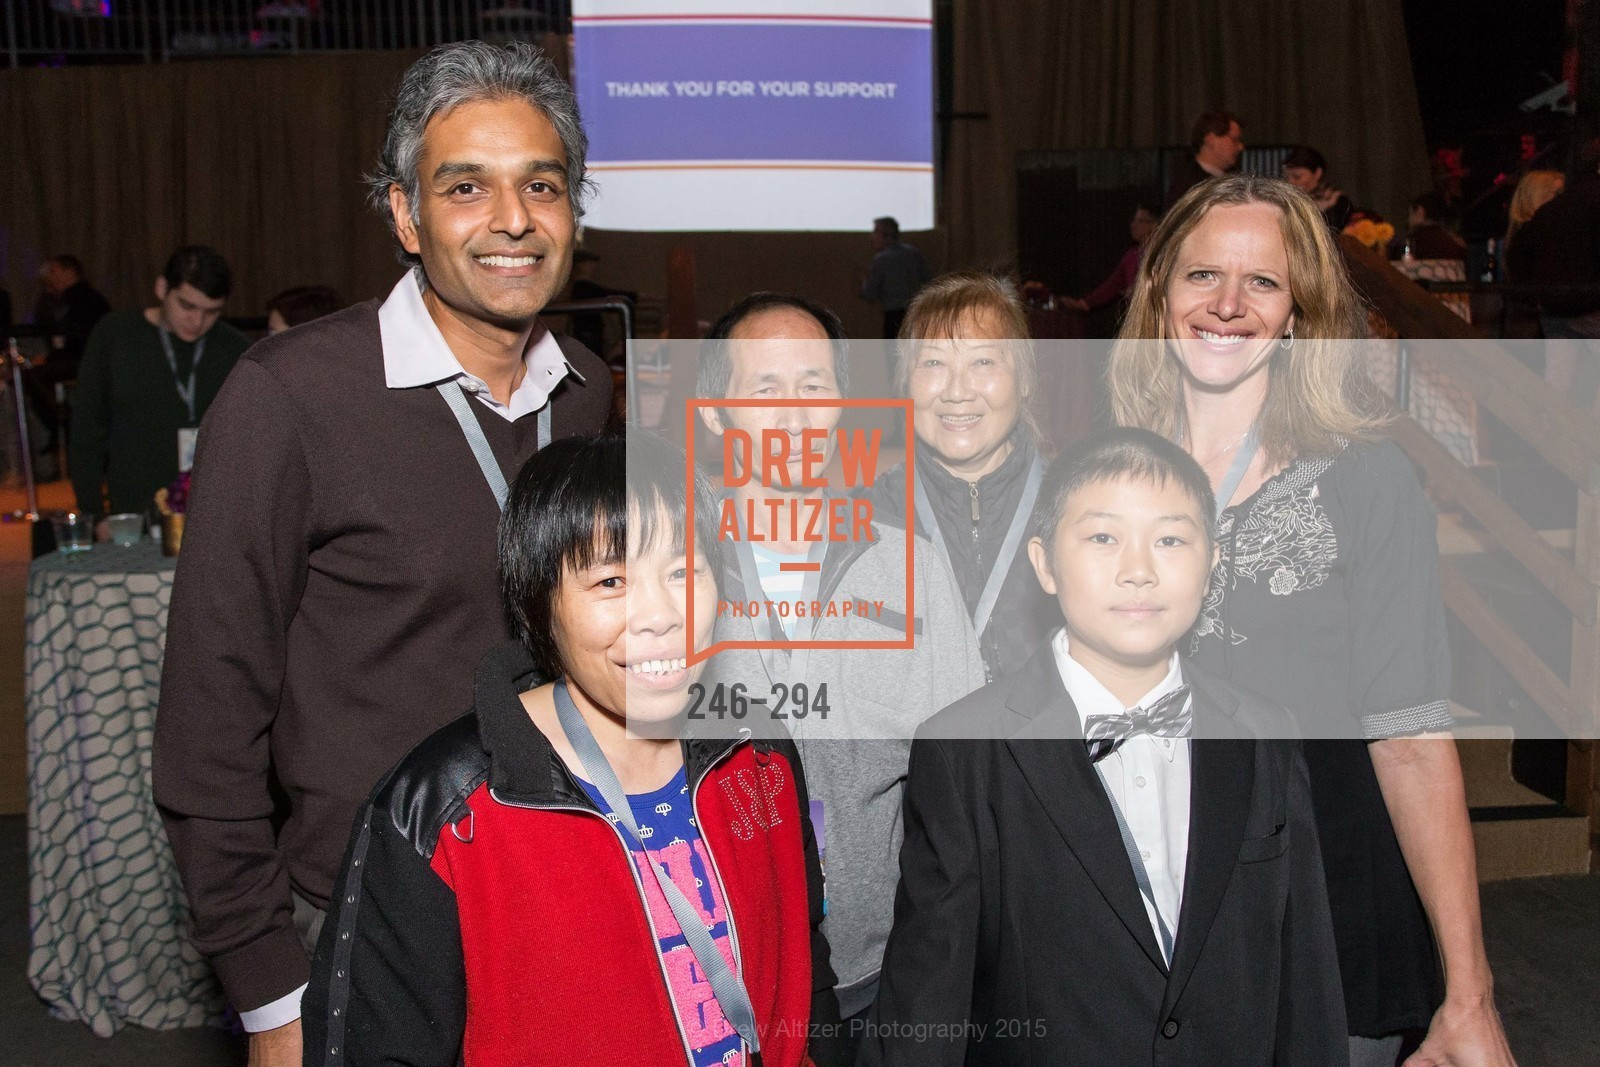 Anu Agrawal, Grace Chan, Chong Zhao, Zhenkang Zhao, Jennifer Michlitsch, The Concert For UCSF Benioff Children's Hospital, Pier 70, September 17th, 2015,Drew Altizer, Drew Altizer Photography, full-service agency, private events, San Francisco photographer, photographer california